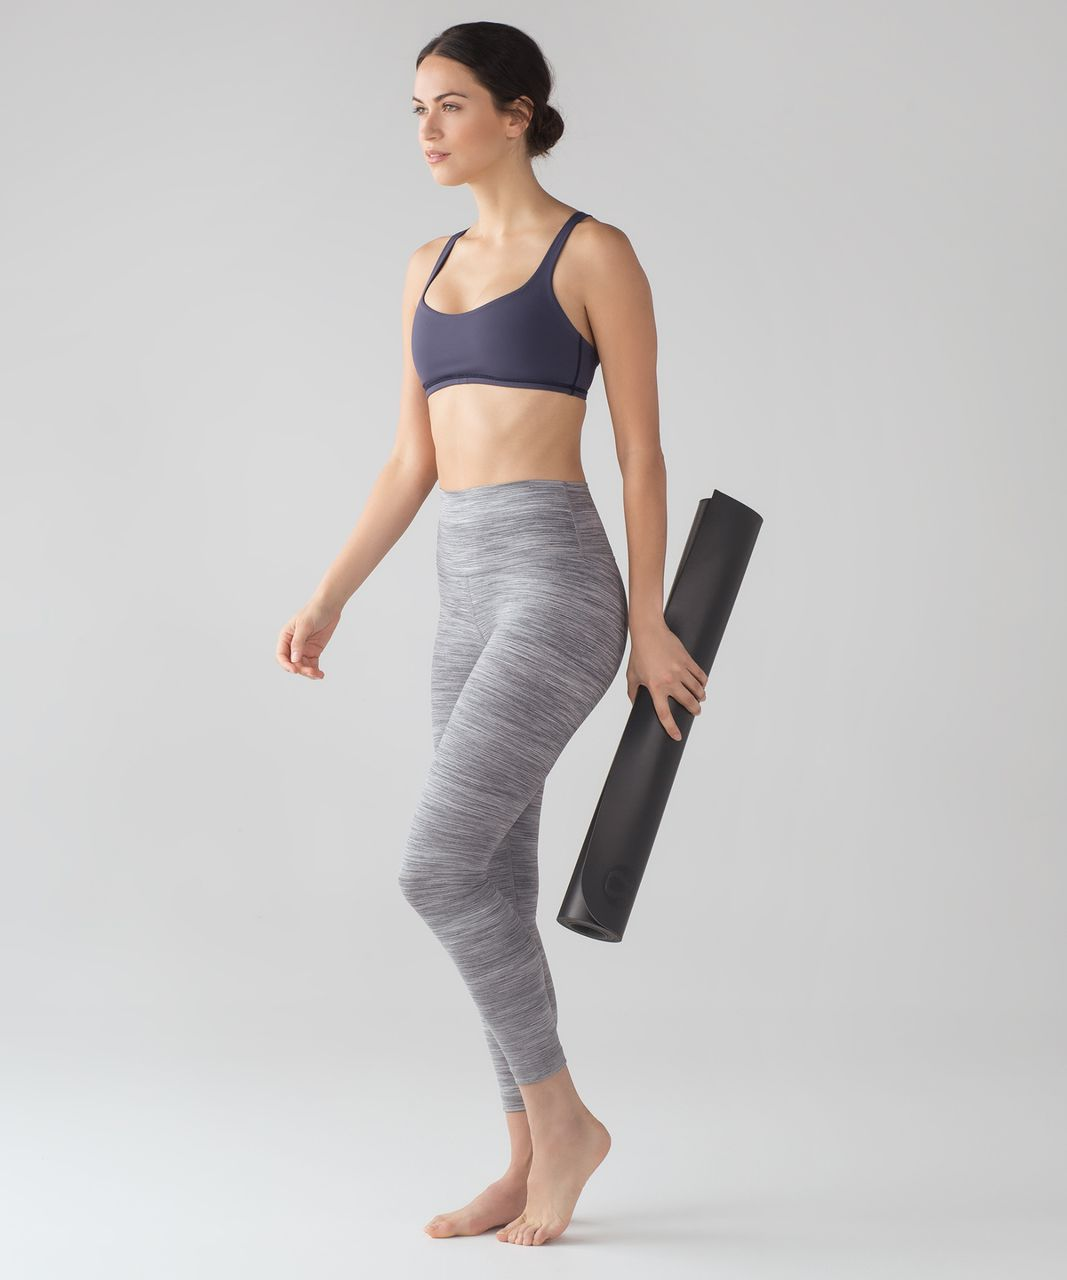 Lululemon High Times Pant (Luxtreme) - Space Dye Camo Seal Grey Deep Coal